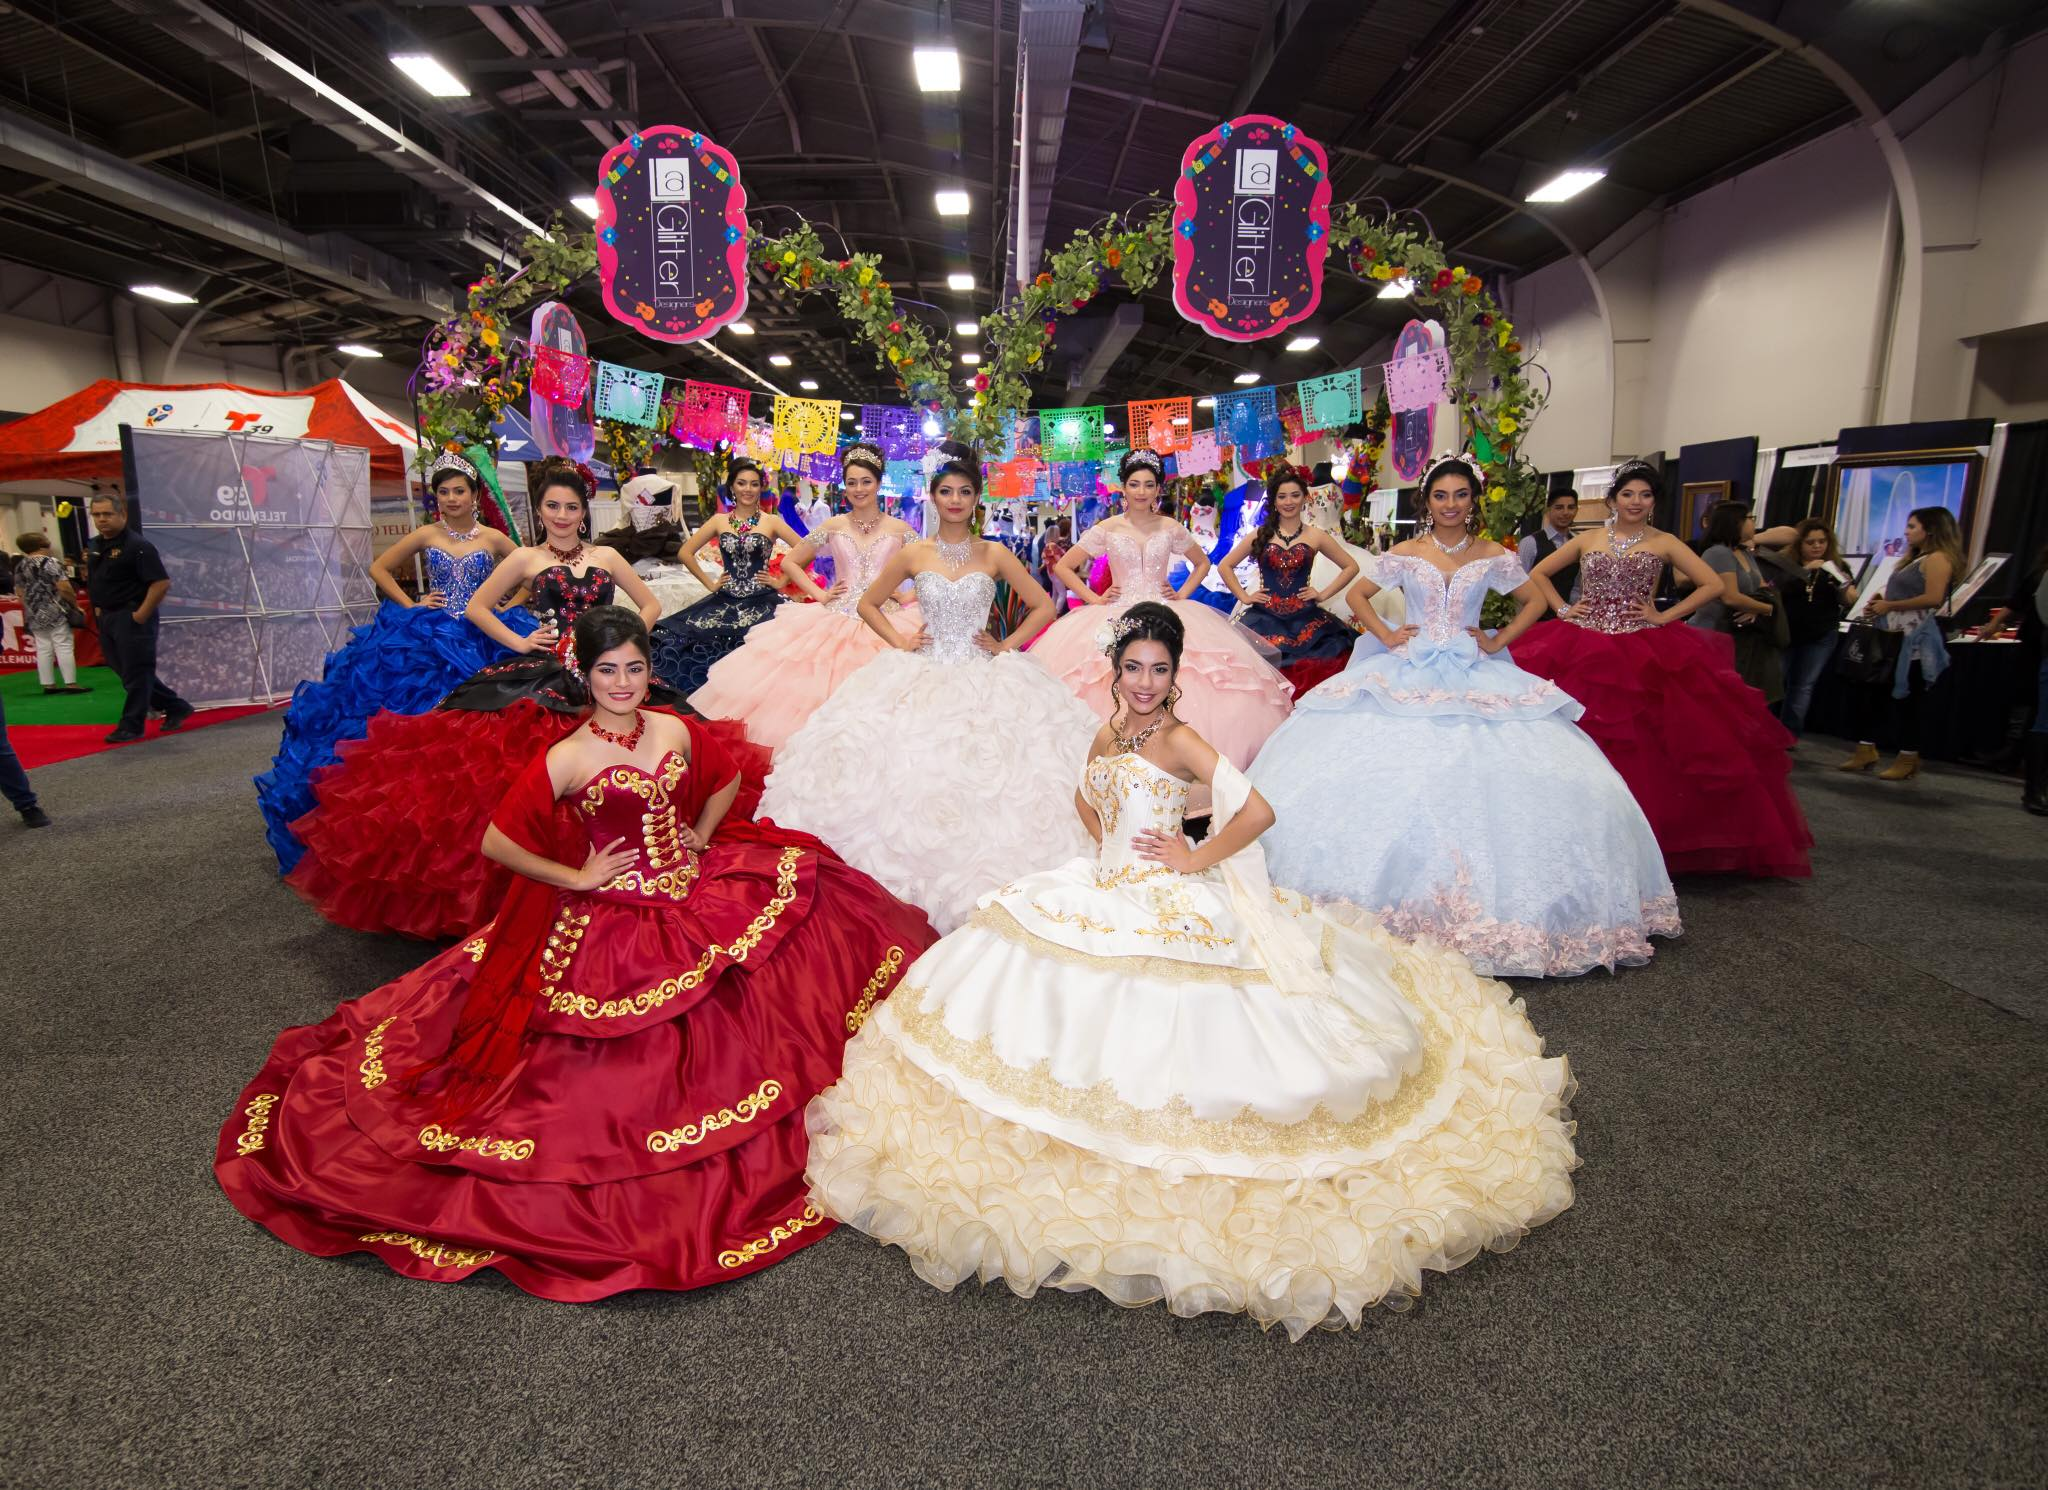 Fine Quinceanera Dresses In Dallas Tx Dress Shops Dallas 15 Home Interior And Landscaping Ologienasavecom